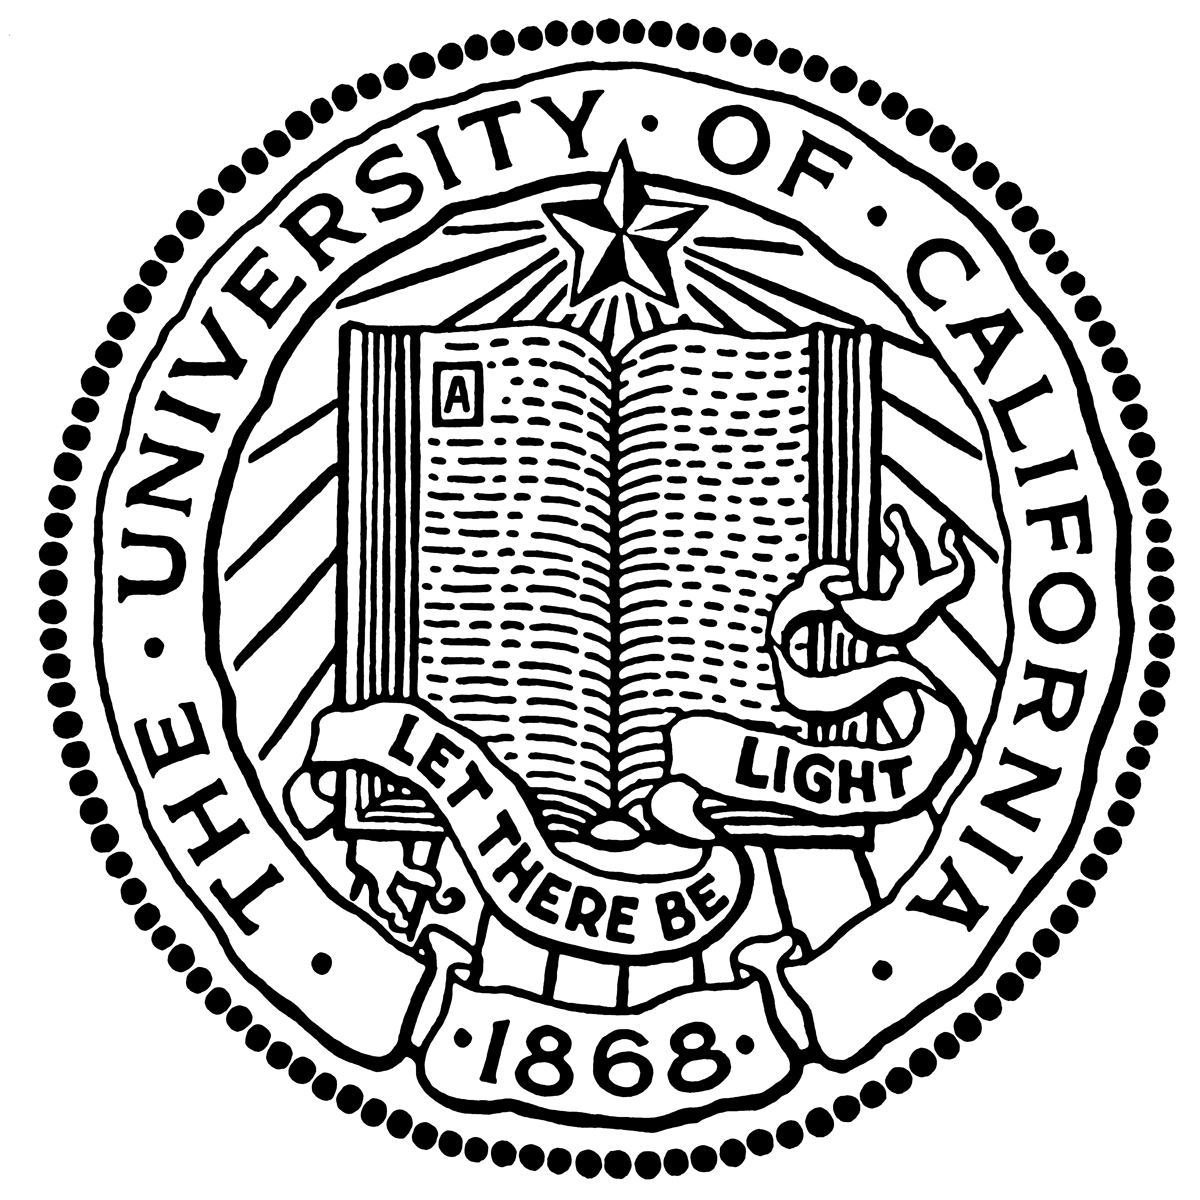 http://www.ucsf.edu/sites/default/files/legacy_files/seal_K.jpg